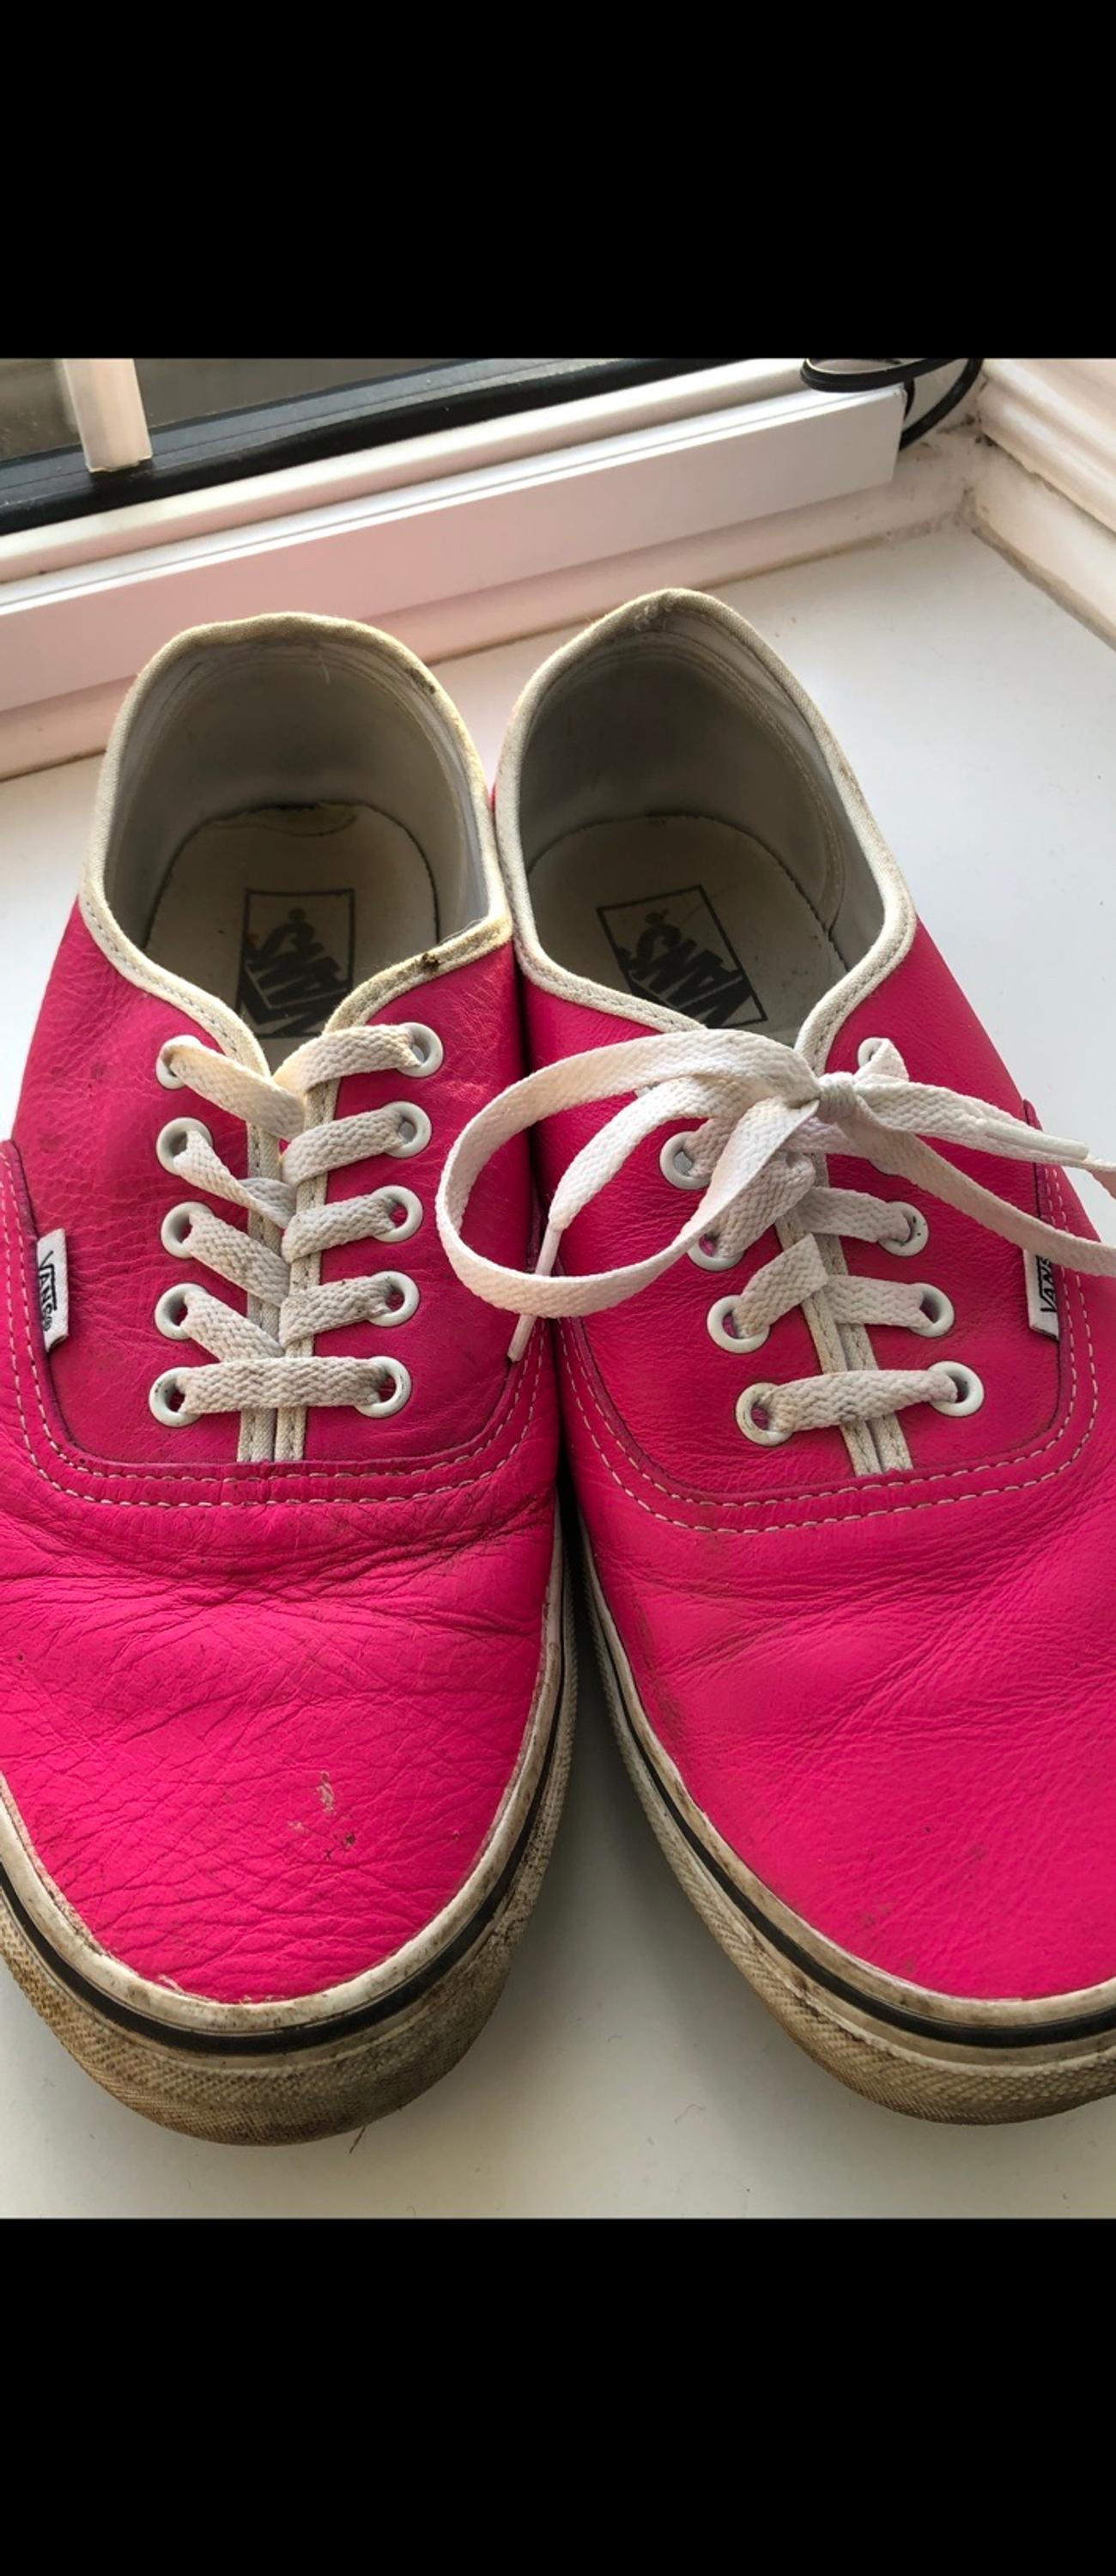 Pink leather vans. Size 9.5 US10. Used but still good condition and plenty of wear left in them. Buyer to collect.